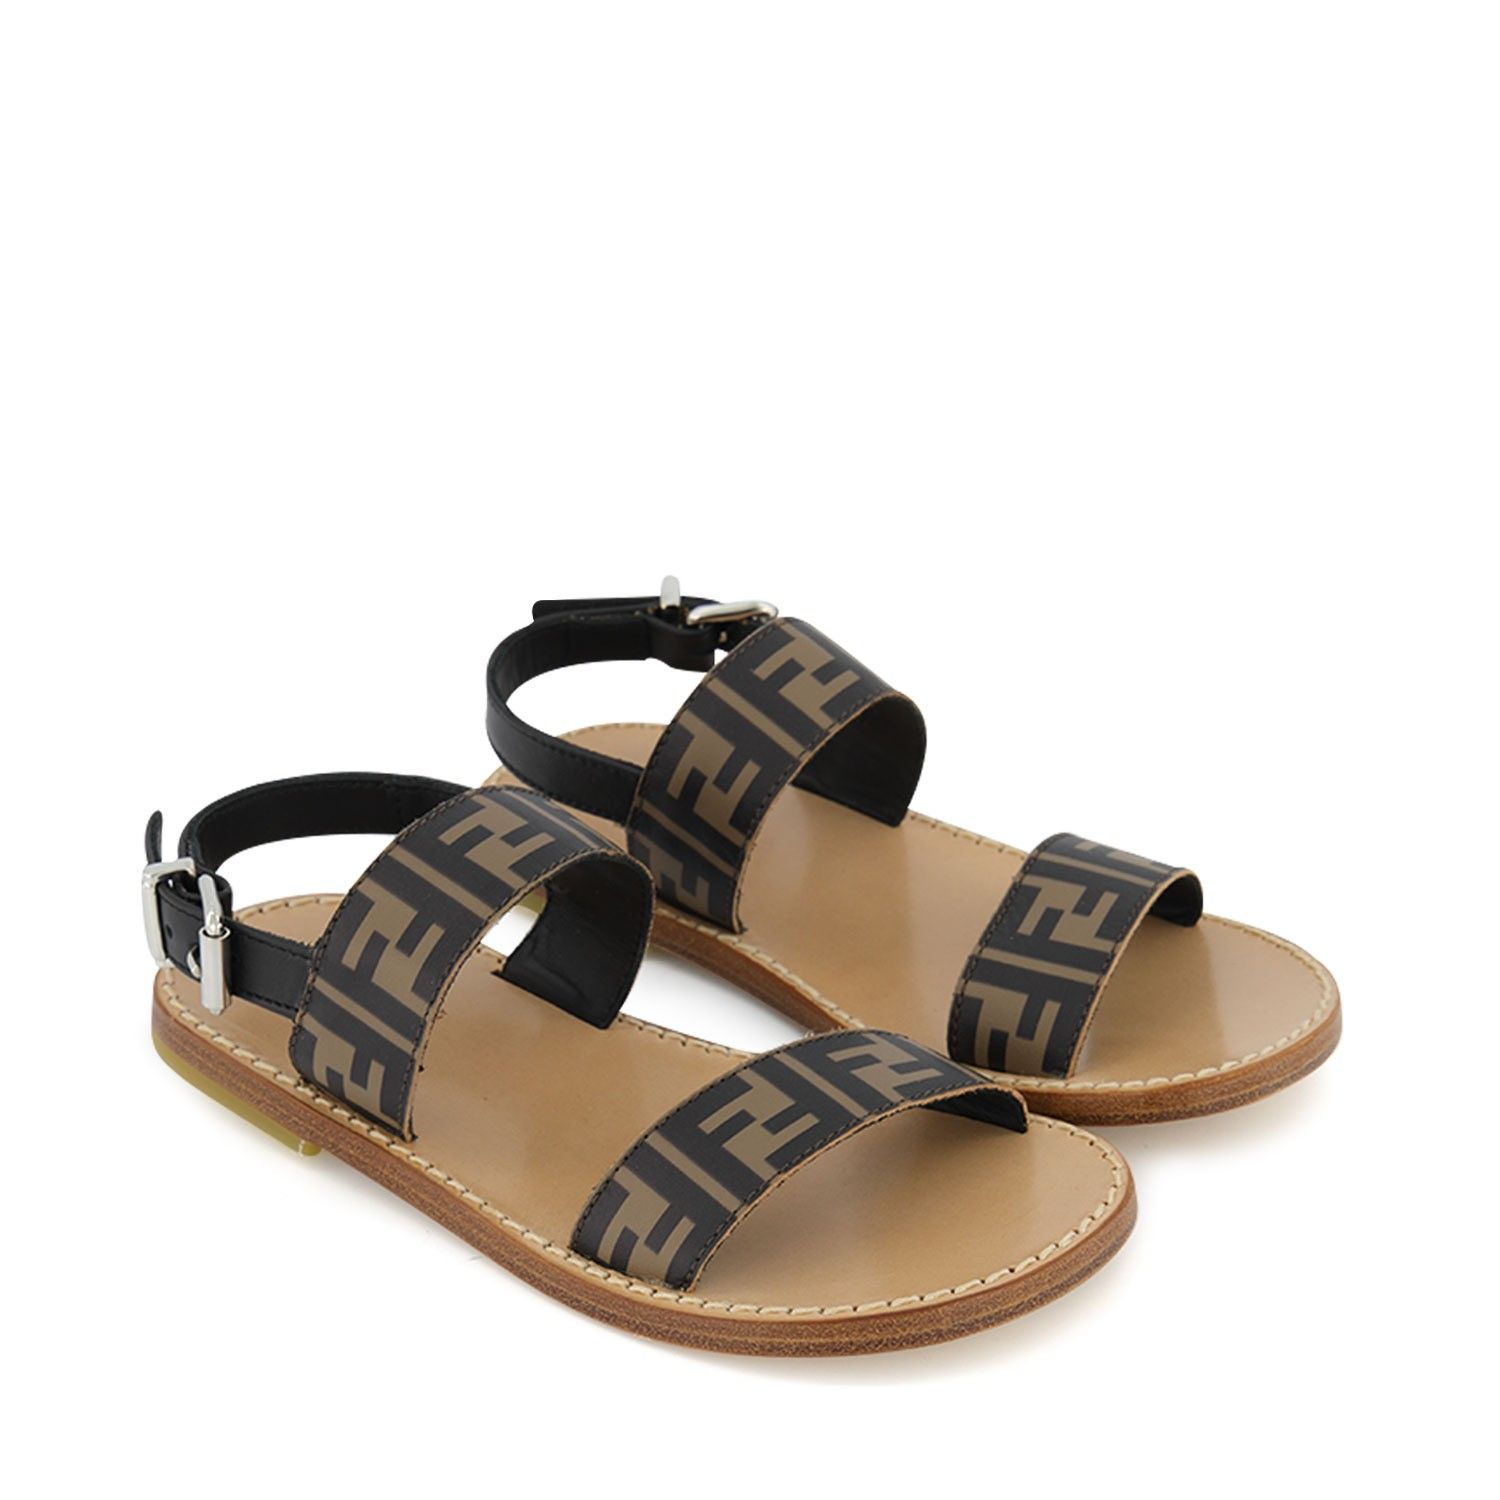 Picture of Fendi JMR324 kids sandals brown